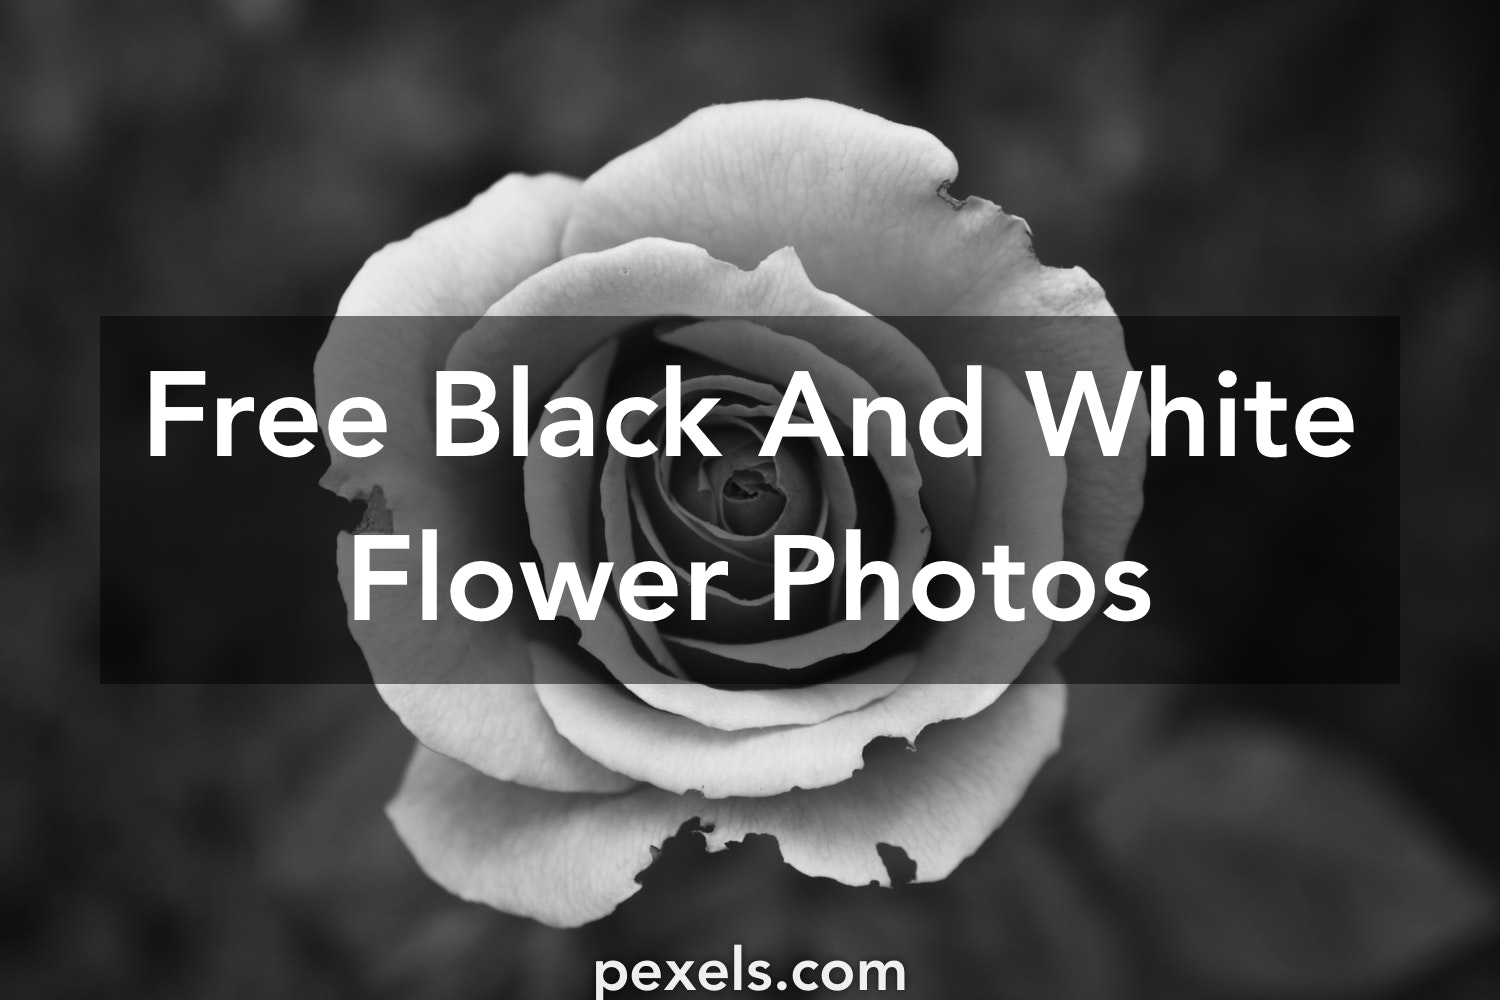 1000 Engaging Black And White Flower Photos Pexels Free Stock